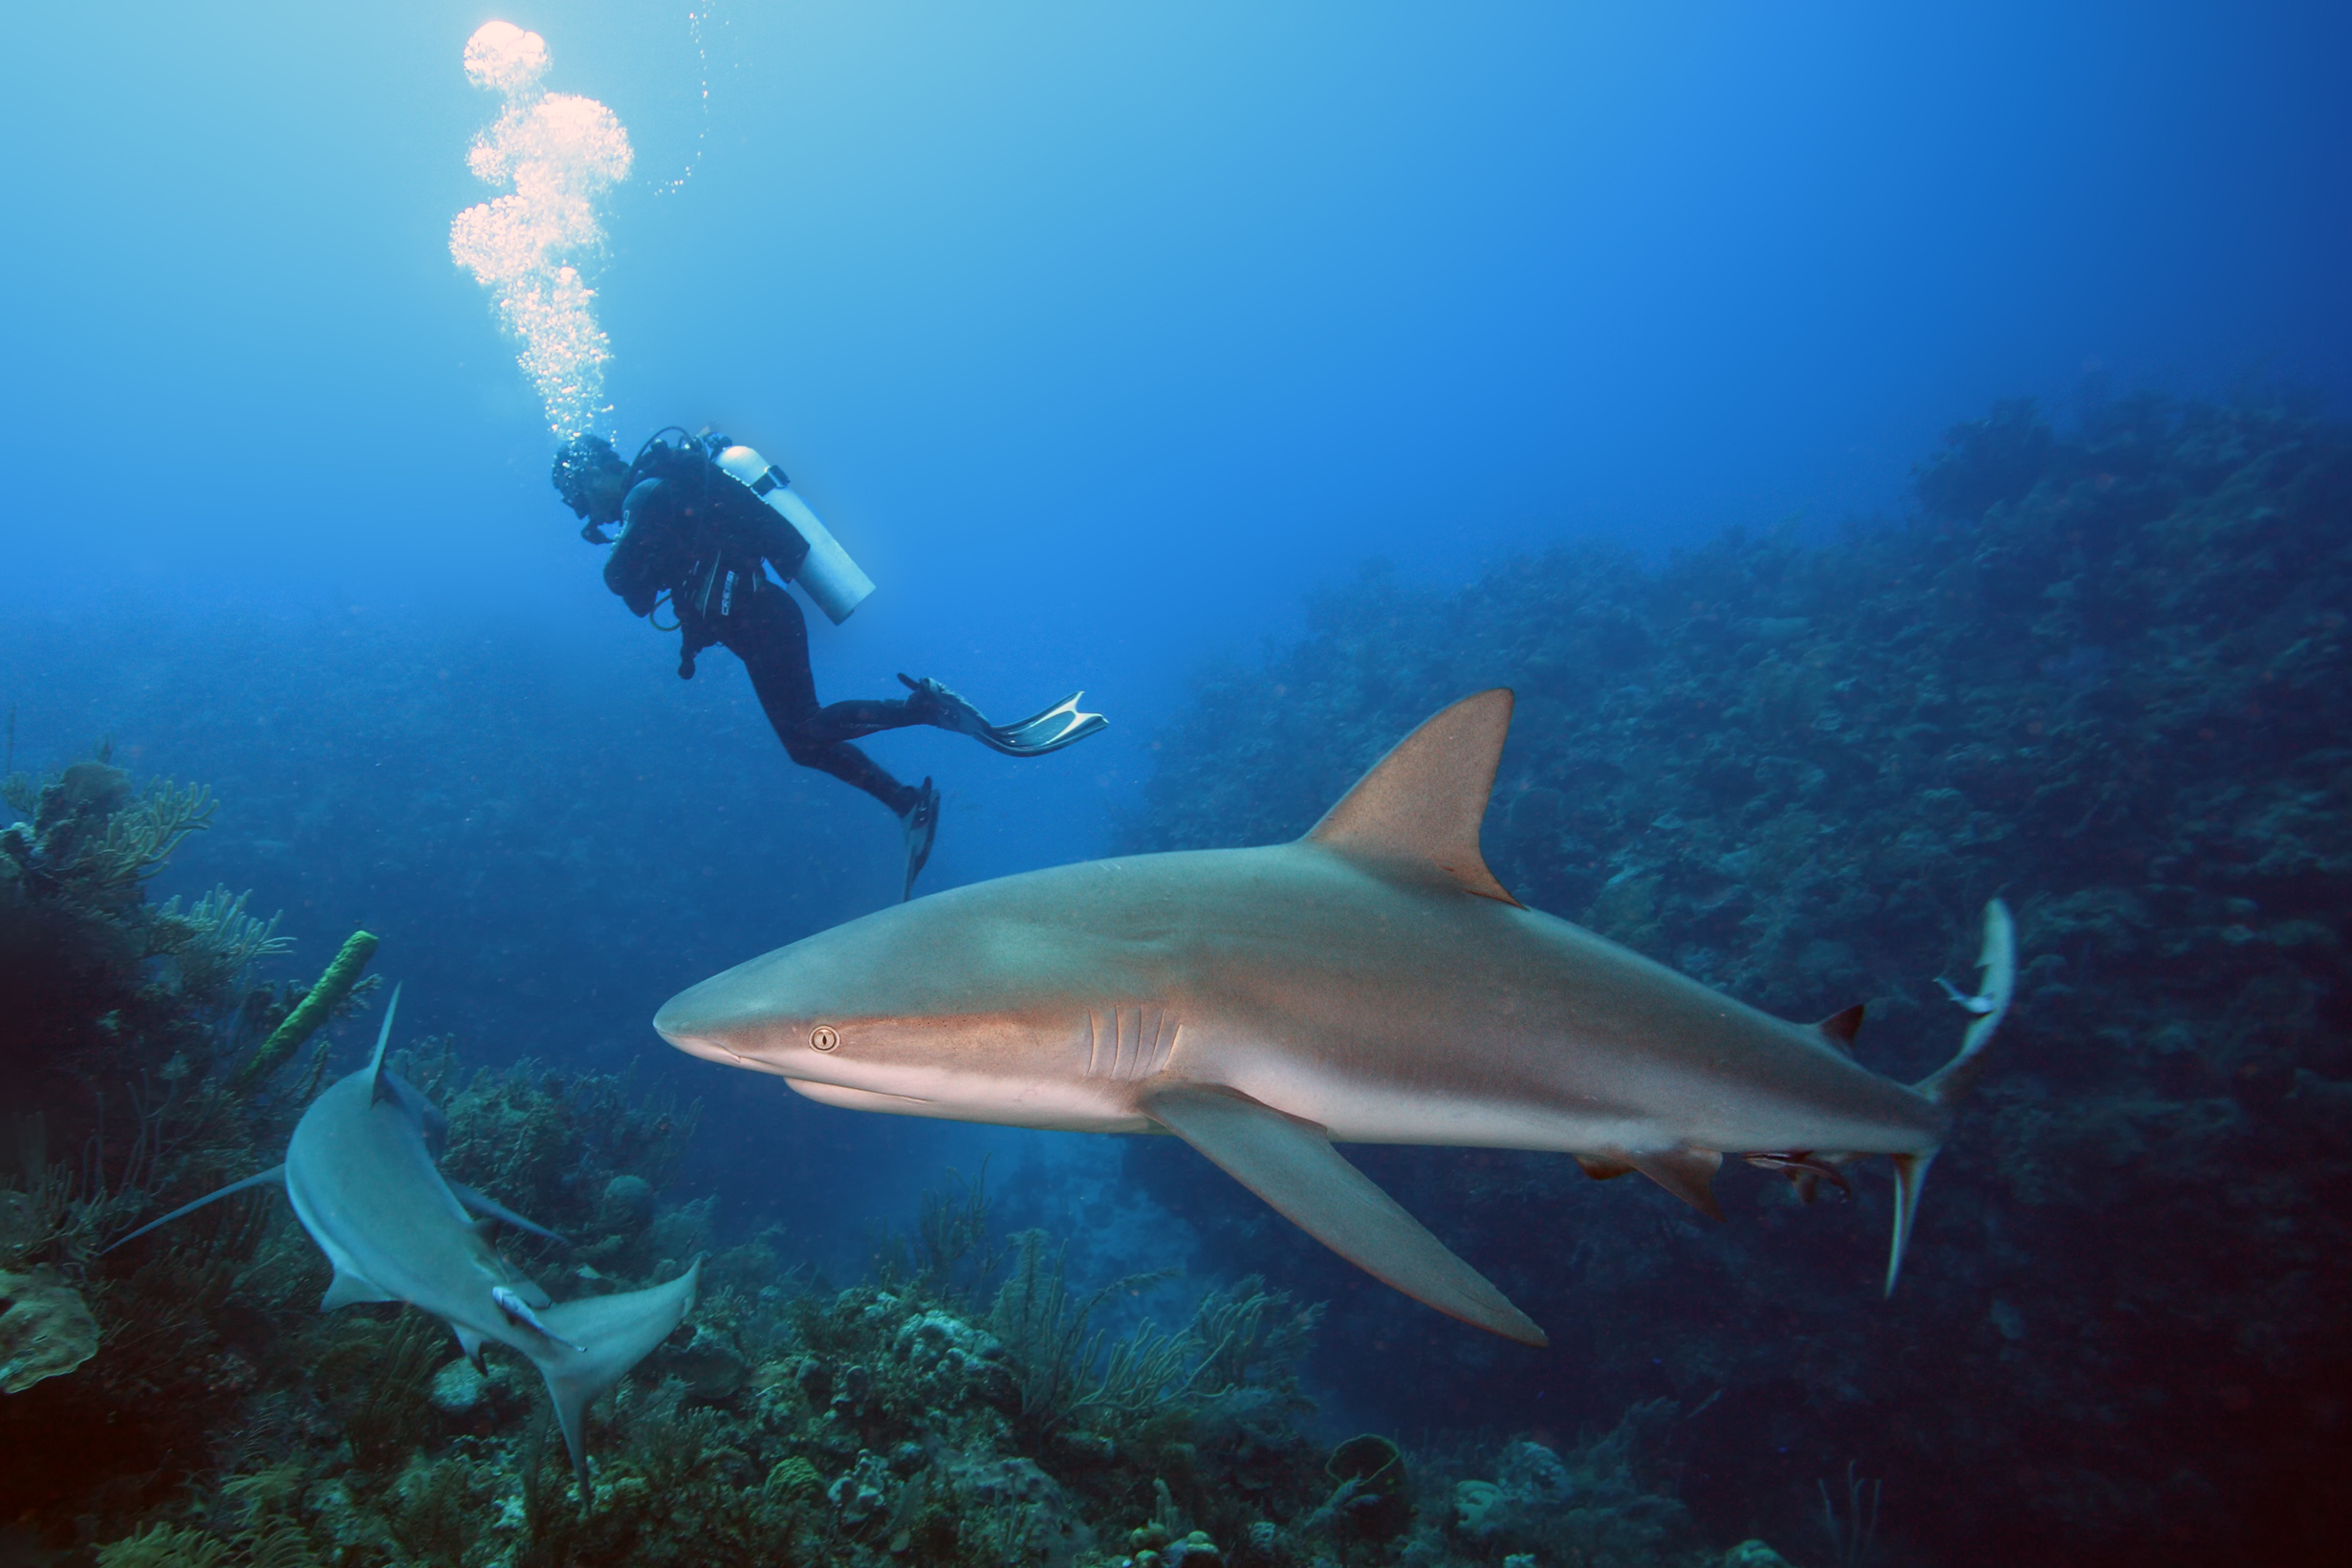 The Caribbean reef shark (Carcharhinus perezii) swims over reef in blue.